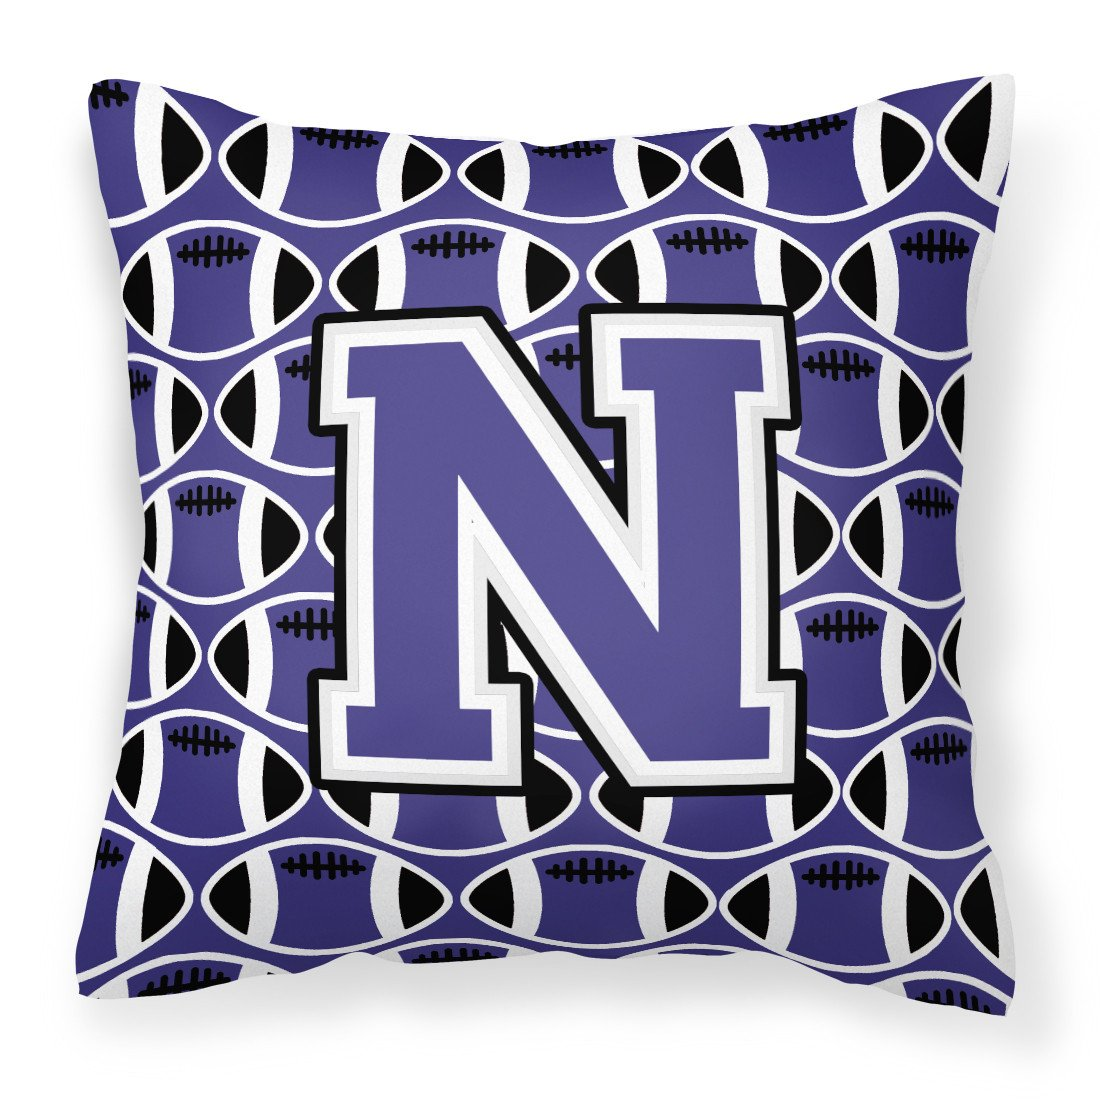 Letter N Football Purple and White Fabric Decorative Pillow CJ1068-NPW1414 by Caroline's Treasures